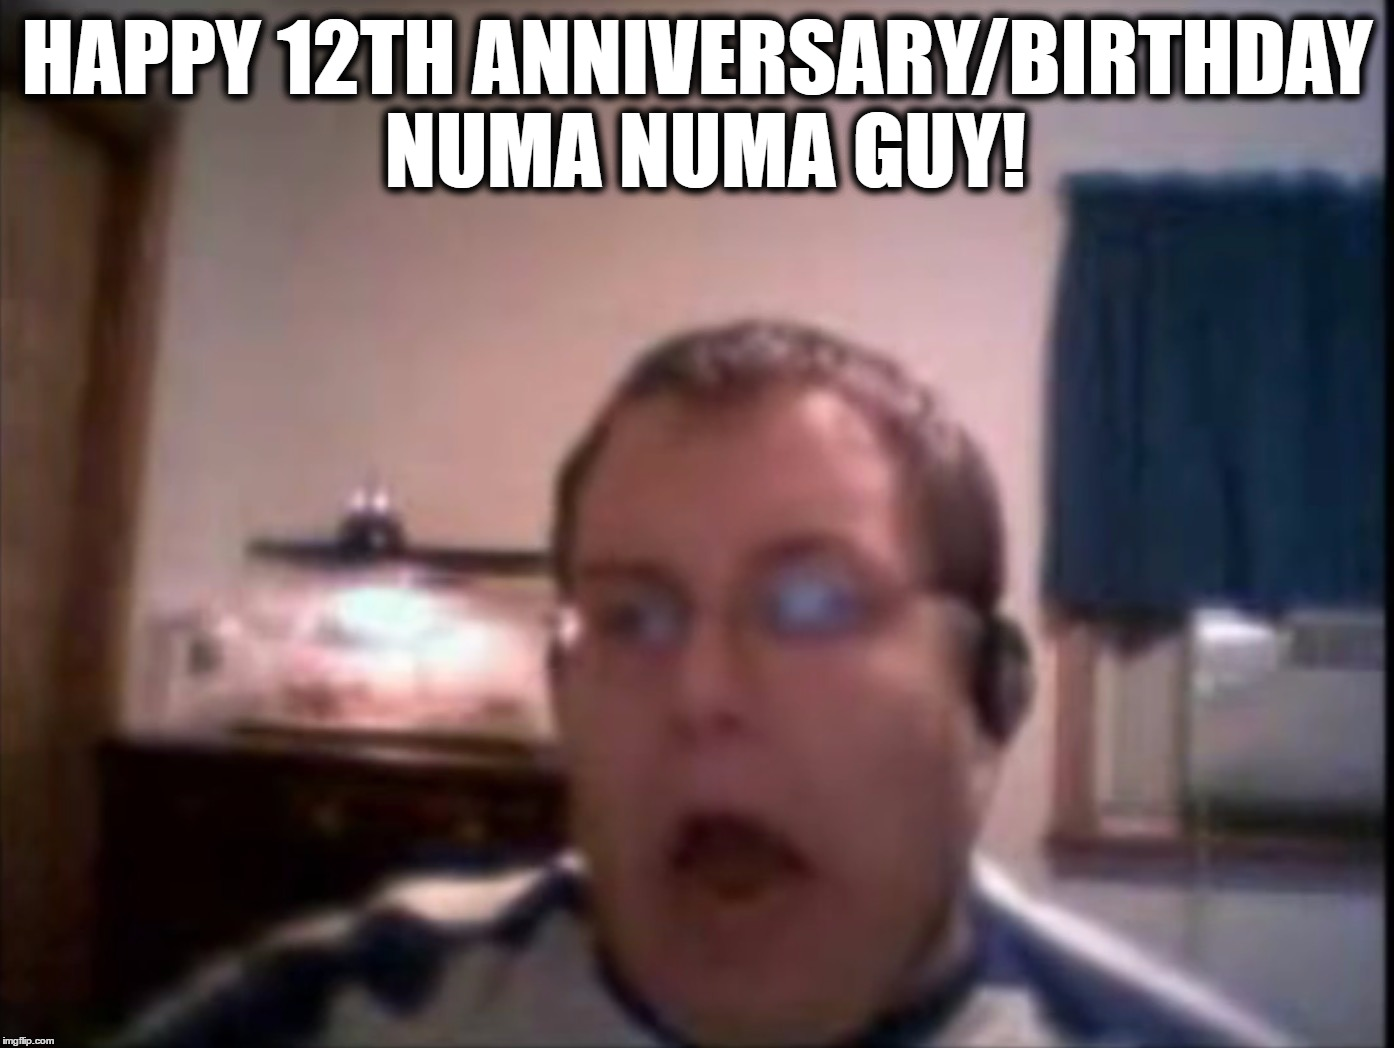 On This Day [December, 6 2004], Numa Numa Guy Made Internet History! | HAPPY 12TH ANNIVERSARY/BIRTHDAY NUMA NUMA GUY! | image tagged in numa numa guy,memes,funny,newgrounds,o-zone,dragostea din tei | made w/ Imgflip meme maker